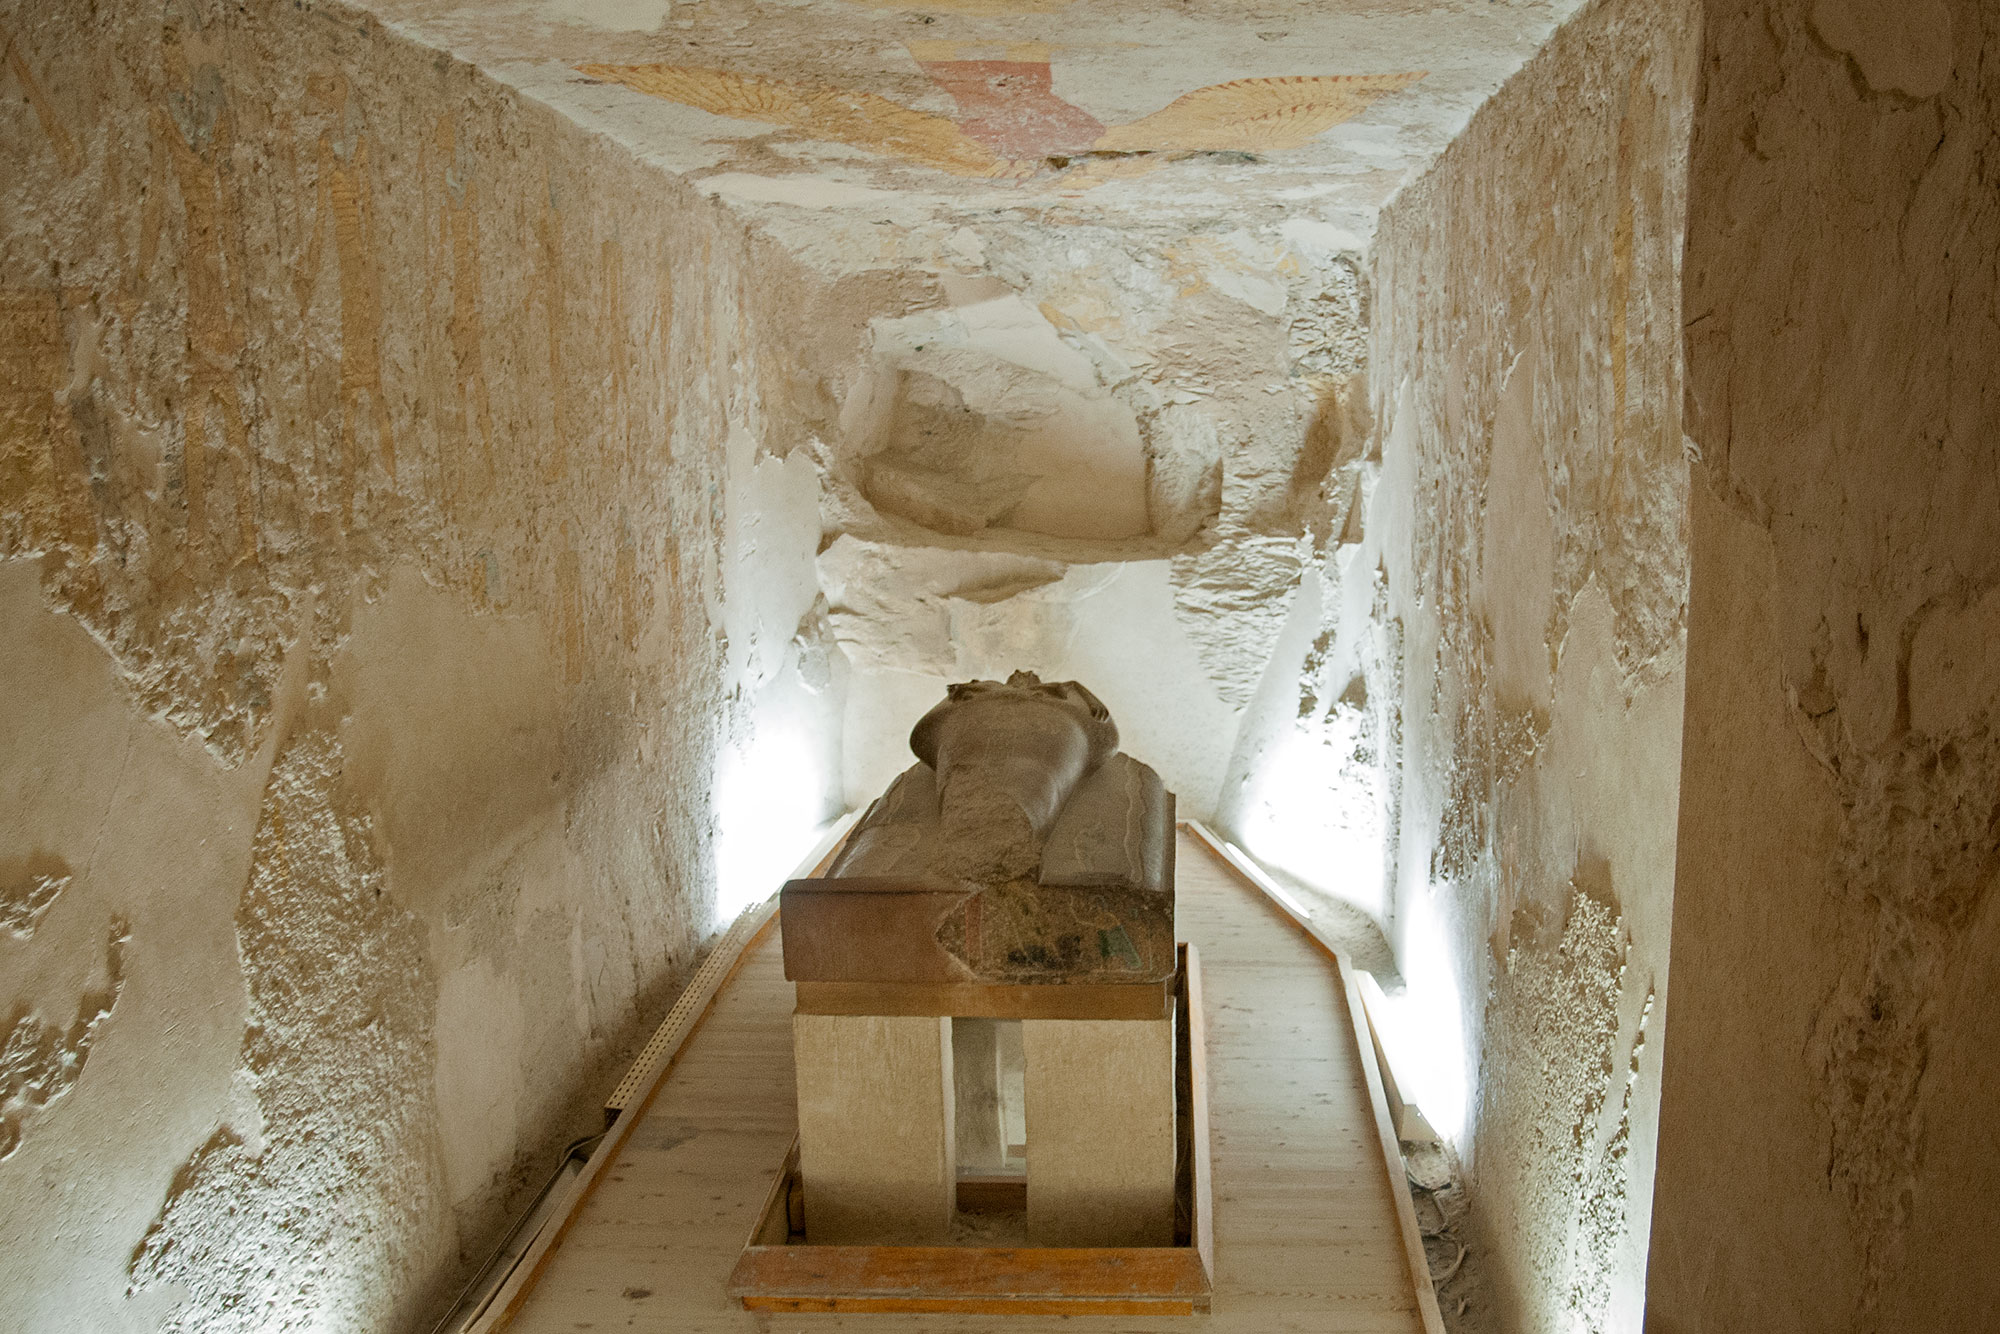 Tomb in the Valley of the Kings, Luxor, Egypt